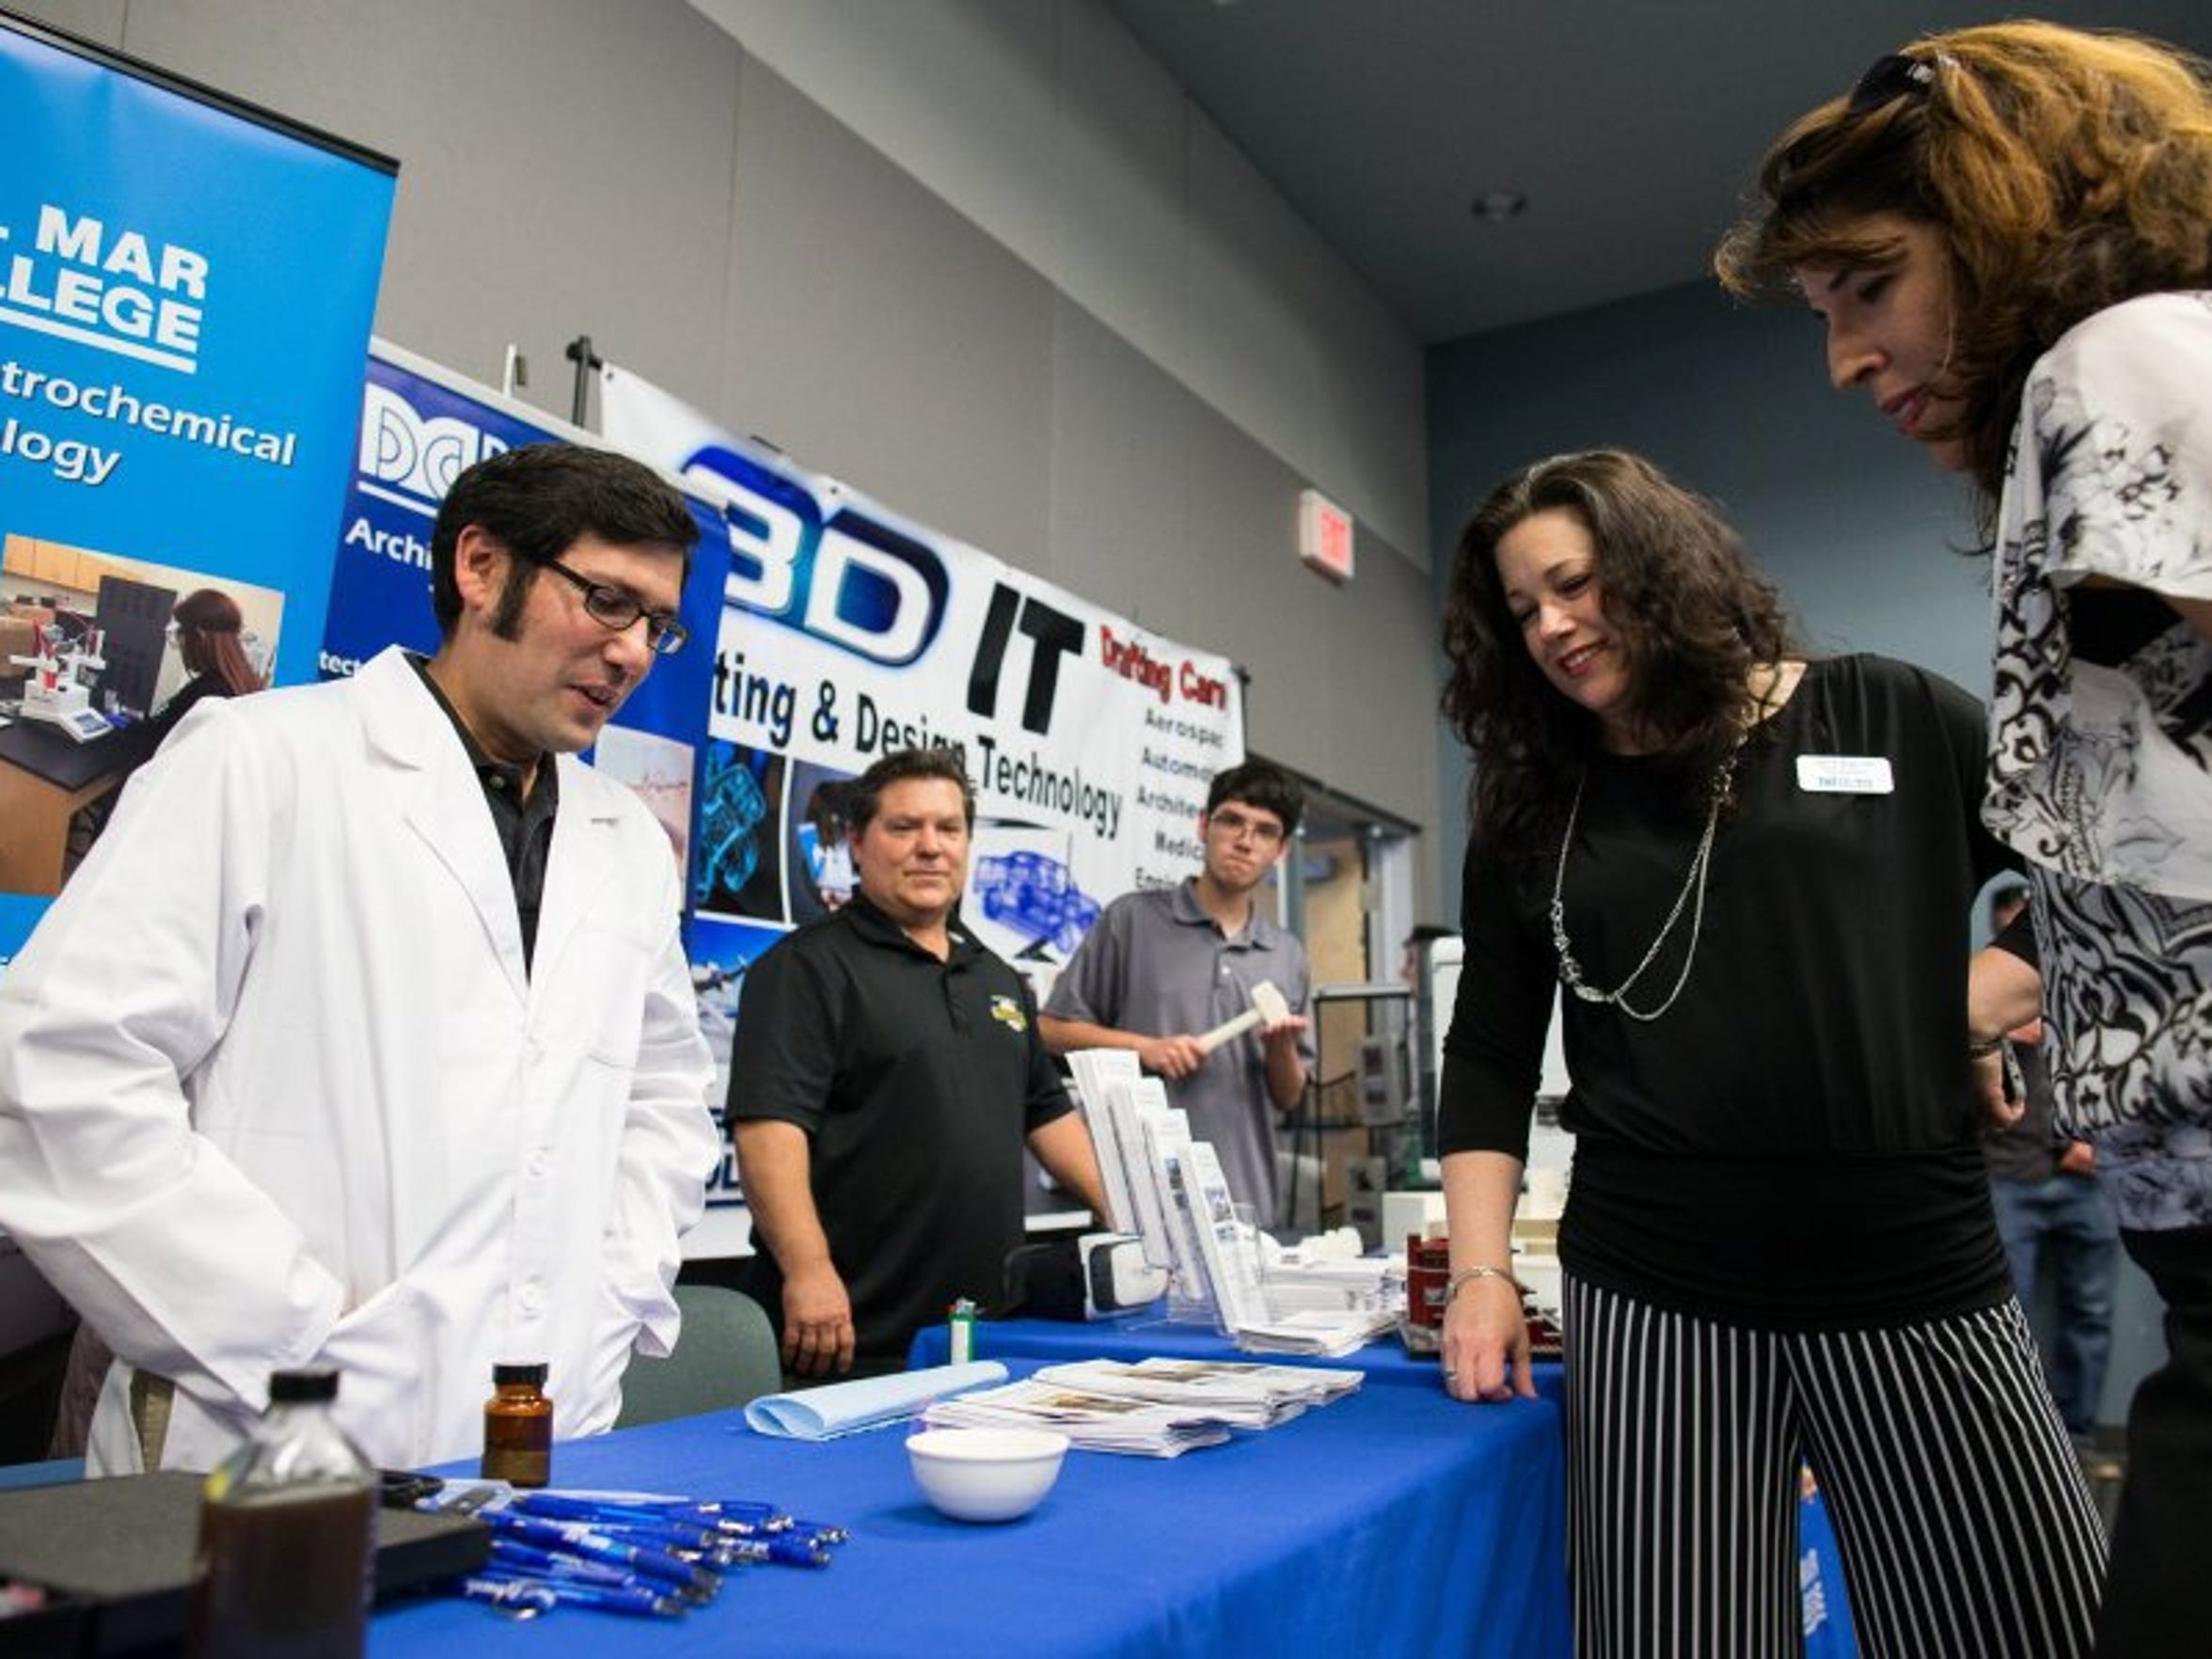 COURTNEY SACCO/CALLER-TIMES Environmental/ Petrochemical instructor Ty Huddleston gives a contaminated fuel demonstration Thursday, May 5, 2016, during a showcase of Del Mar College's technical training programs.